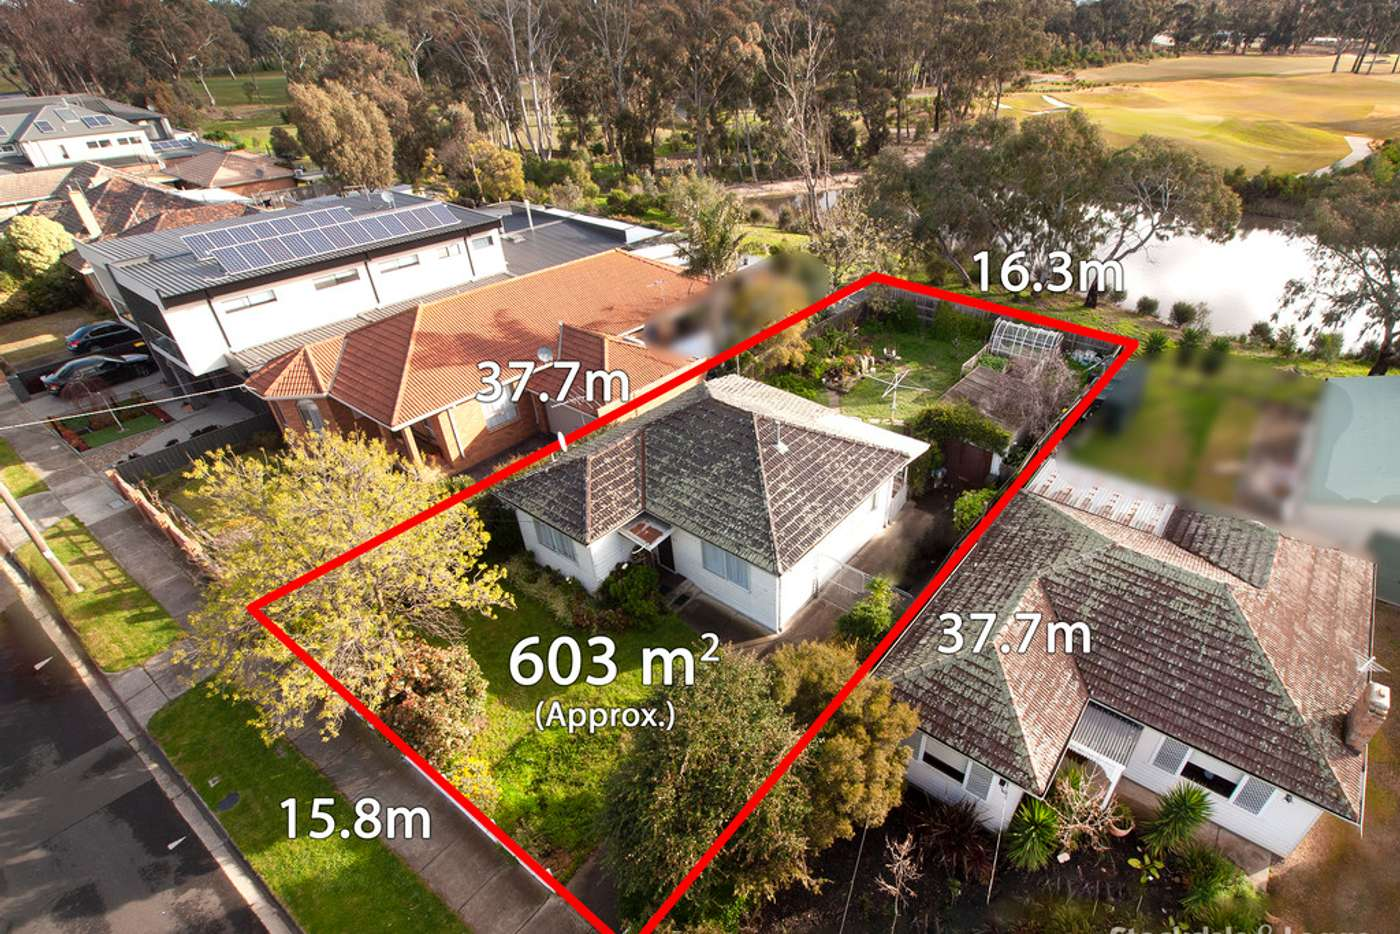 Main view of Homely house listing, 63 Farview Street, Glenroy VIC 3046